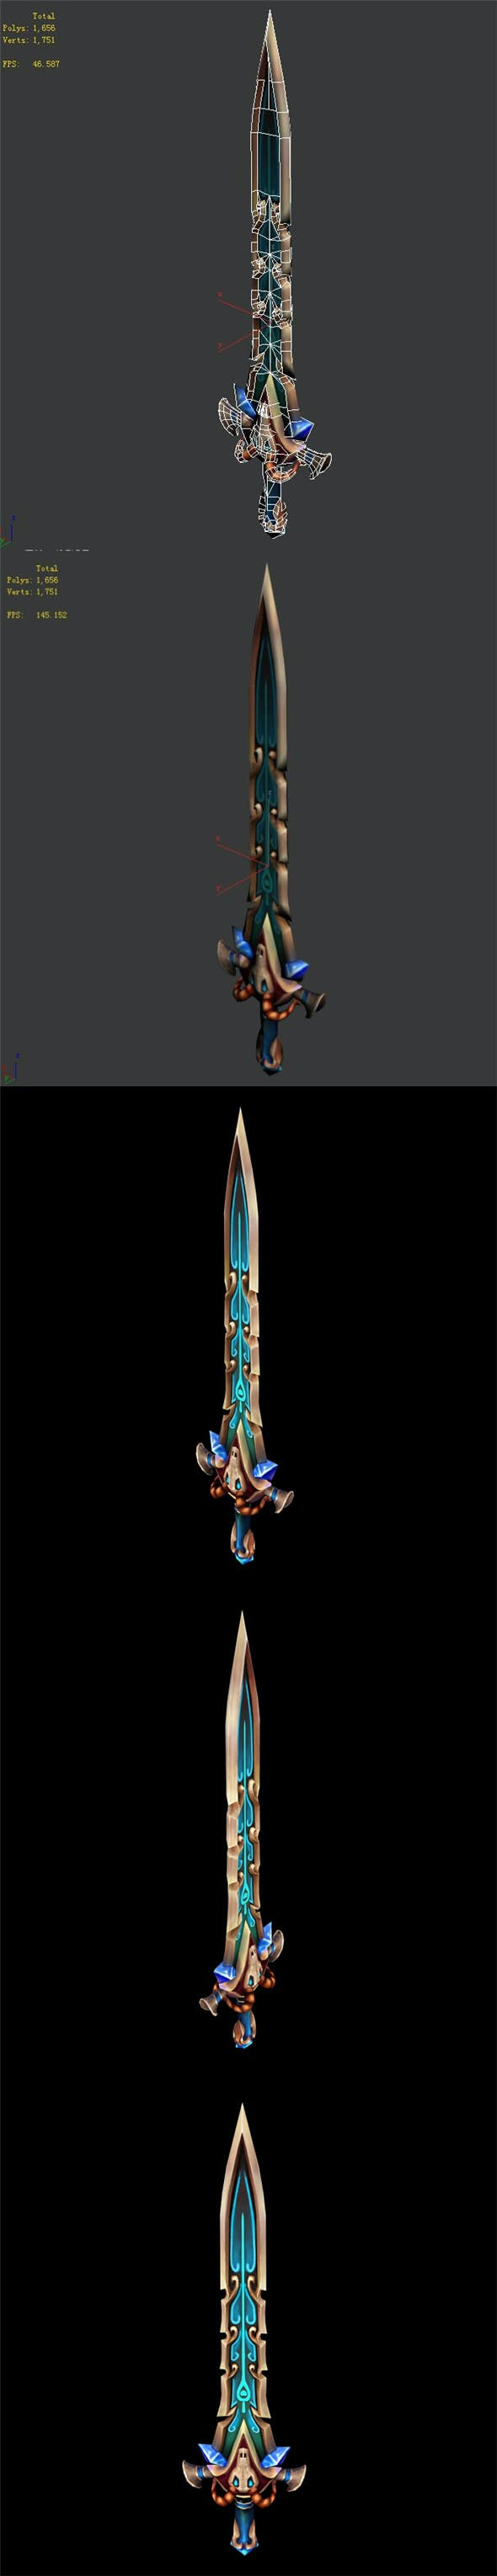 Game character weapon - purely - 3DOcean Item for Sale